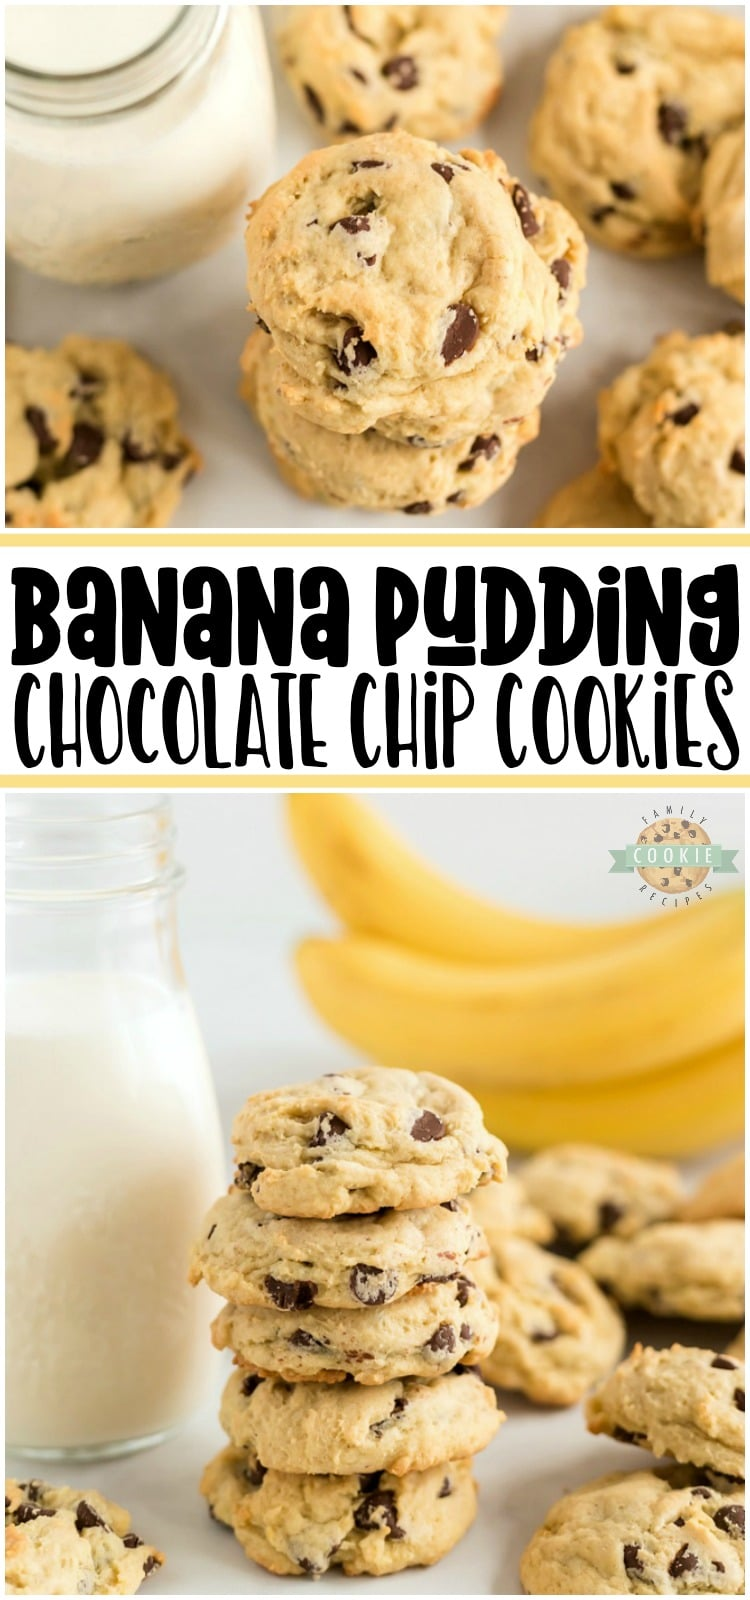 Banana Chocolate Chip Cookies are made with fresh bananas and chocolate chips folded into a lovely vanilla pudding cookie dough. A soft chocolate chip cookie recipe with lovely bright, fresh flavor from fresh bananas and chocolate.